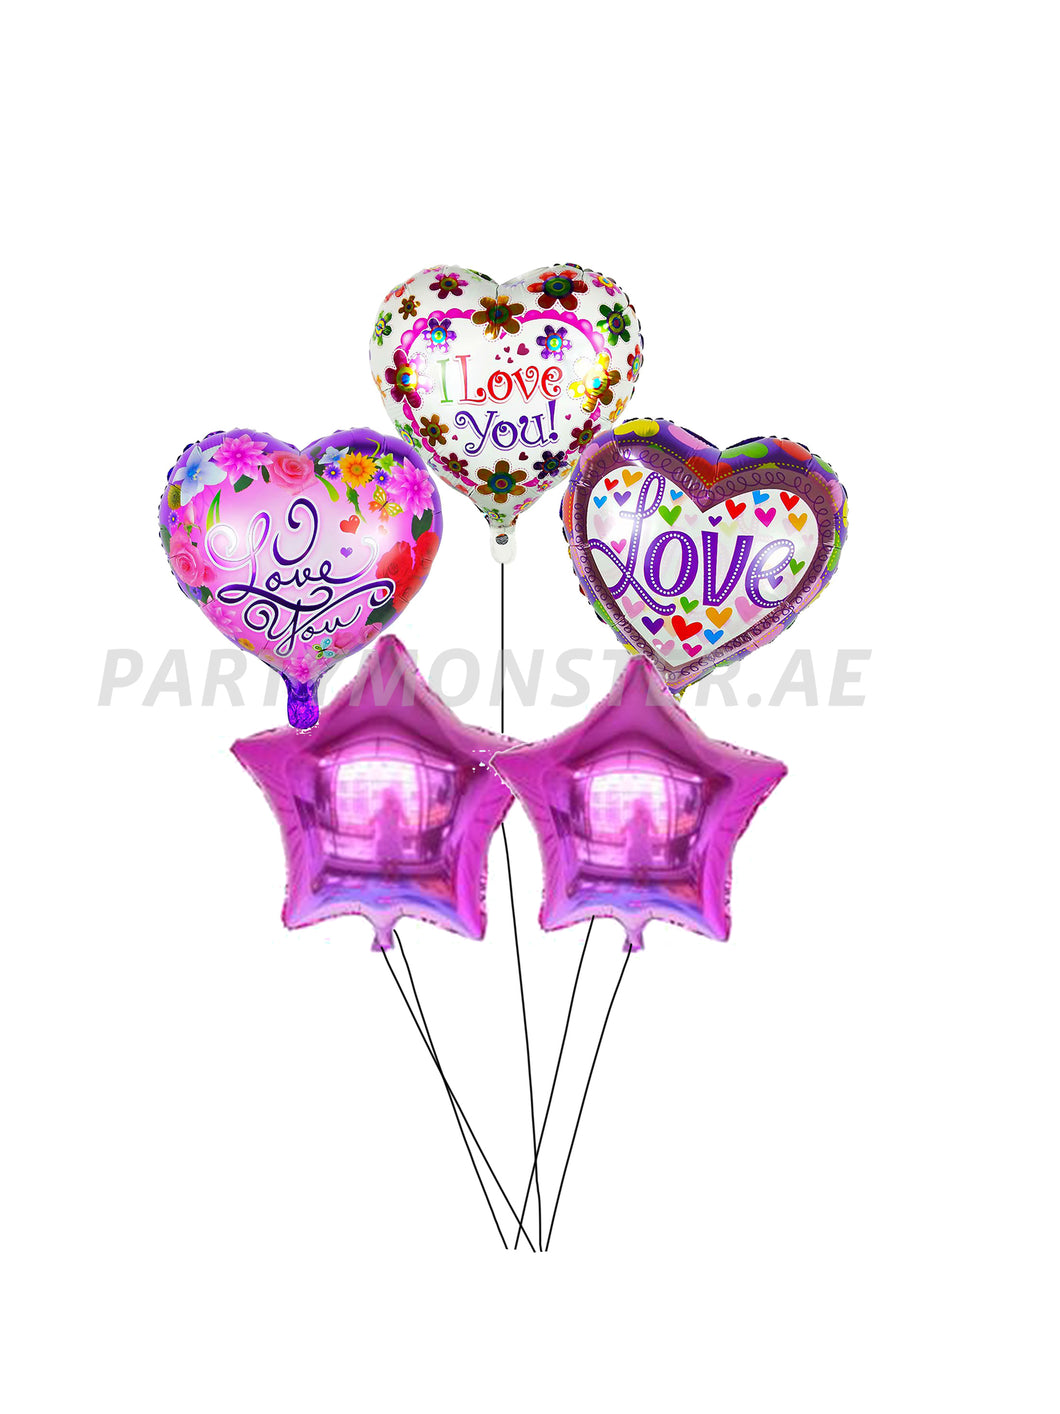 Purple love balloons bouquet - PartyMonster.ae